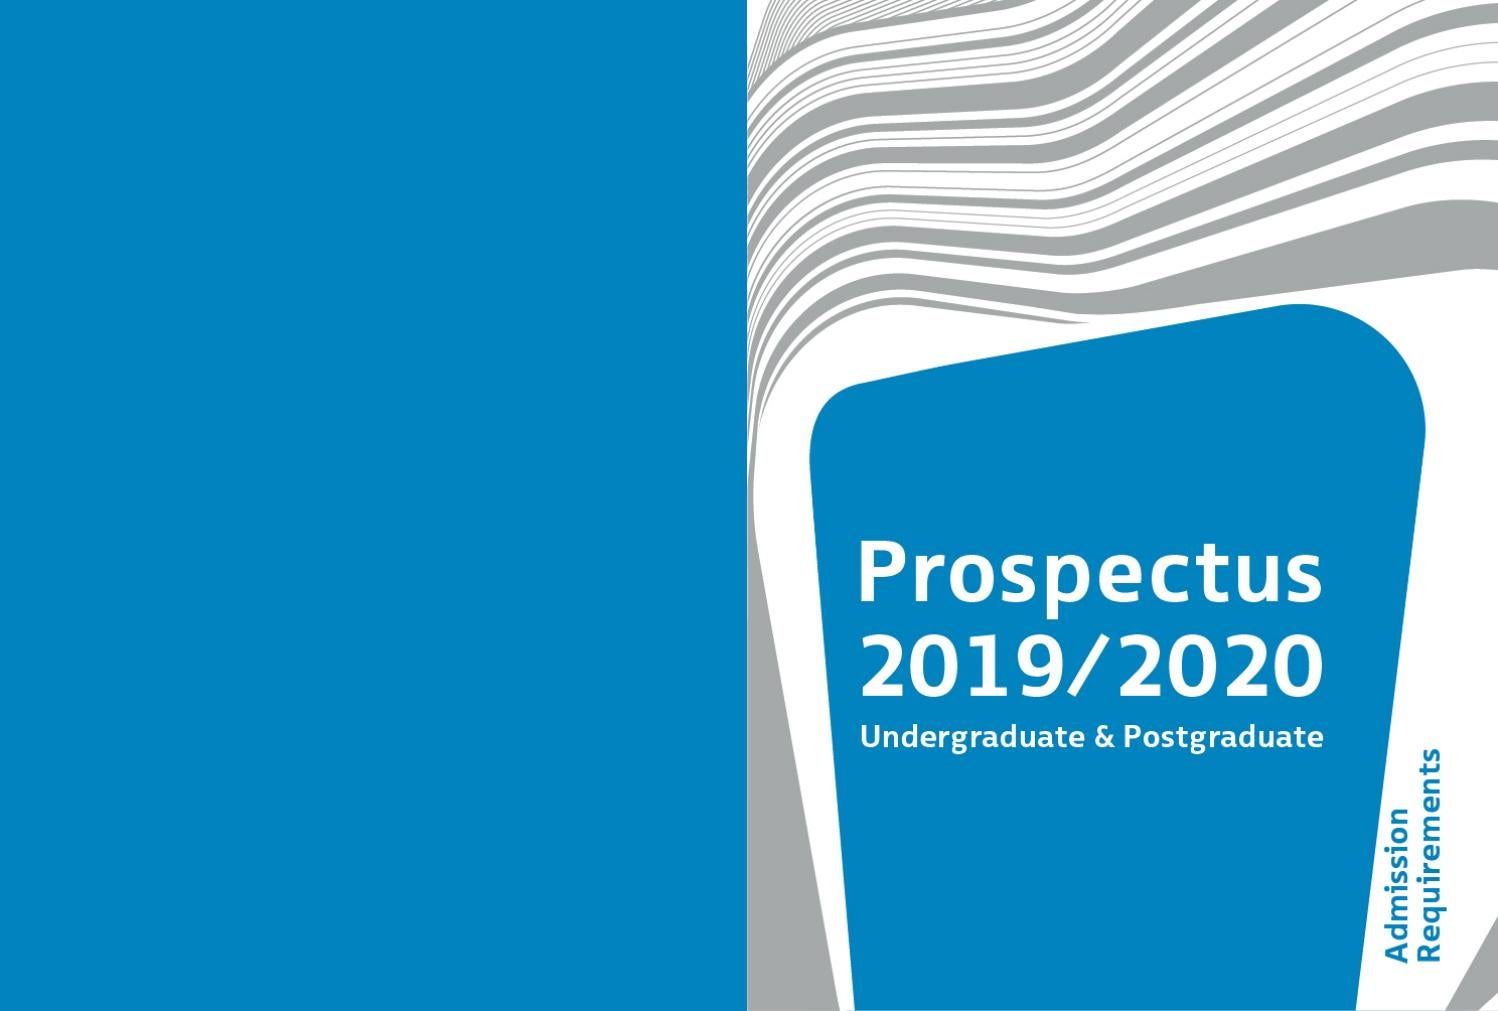 POLYU DESIGN 2019/2020 Prospectus - Admission Requirement by